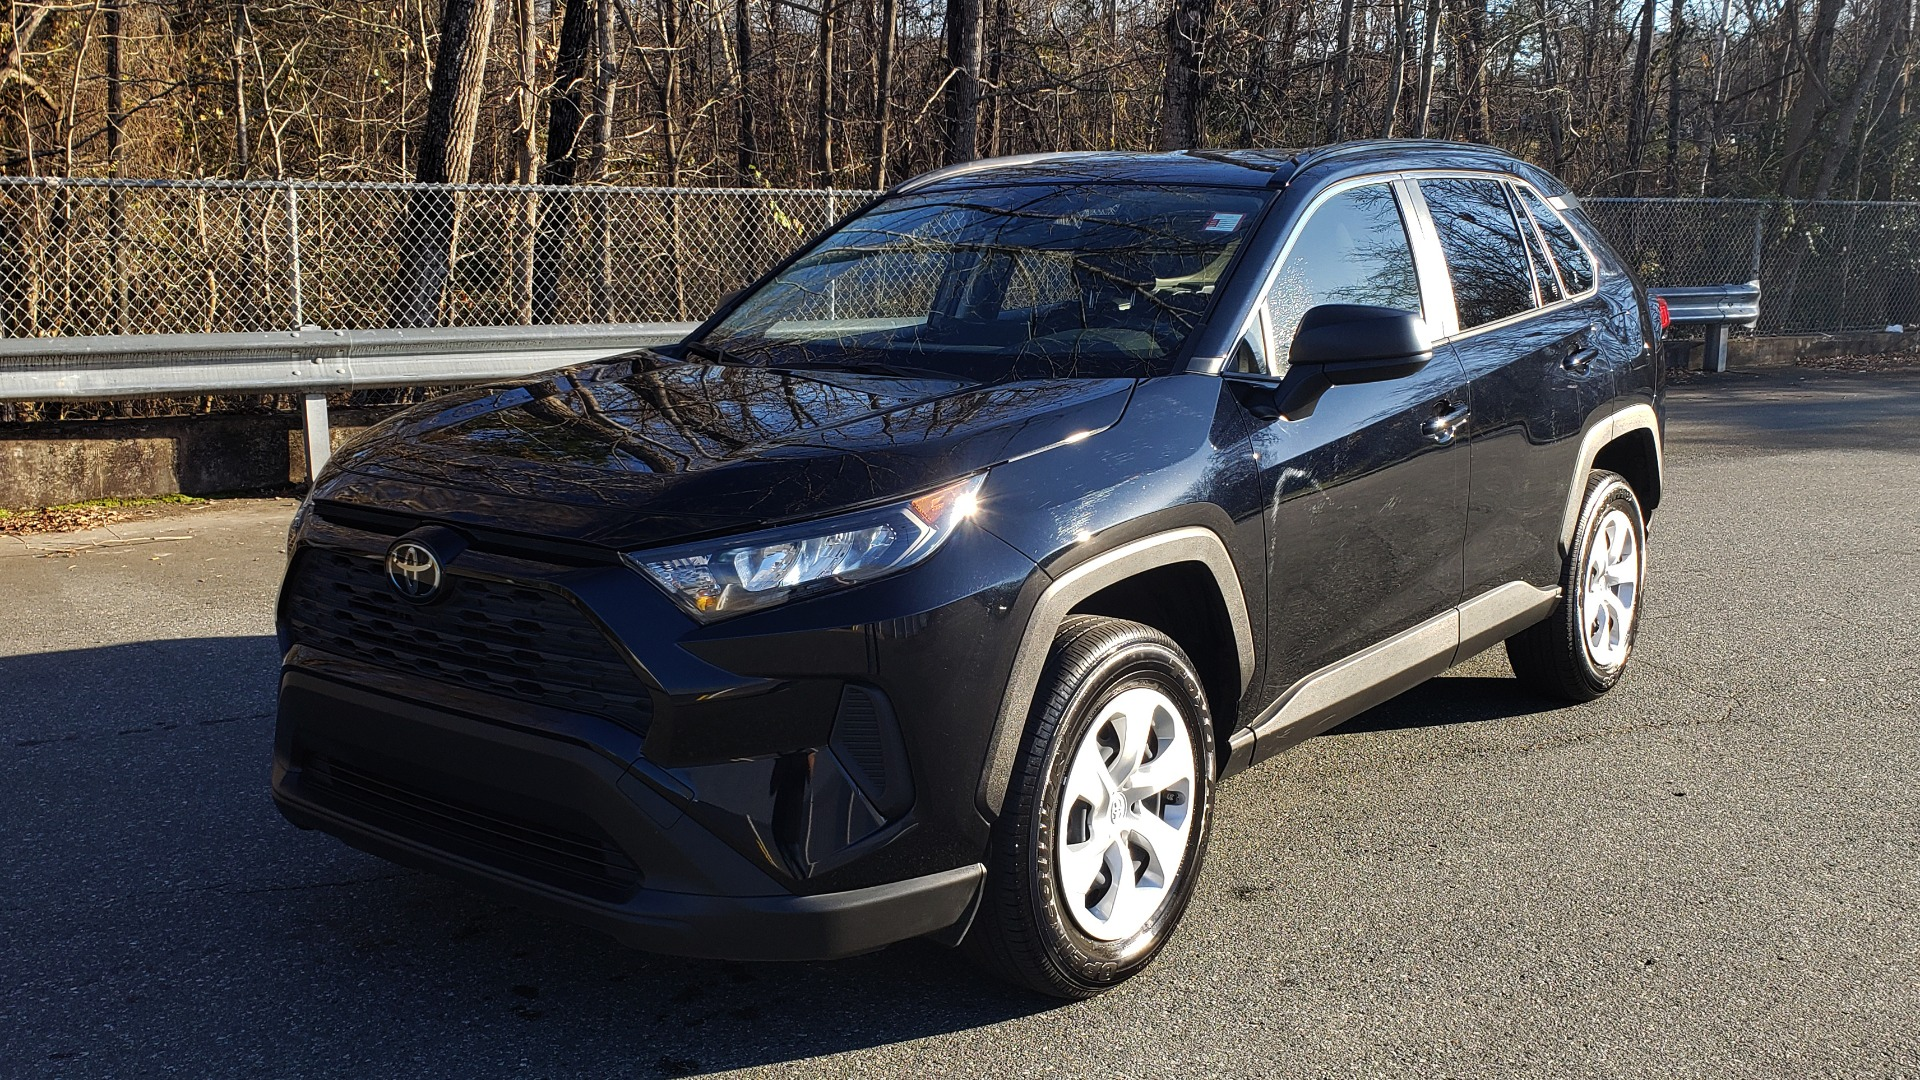 Used 2019 Toyota RAV4 LE / 2.5L I4 / 8-SPEED AUTO / LTA / PCS / RSA / REARVIEW for sale Sold at Formula Imports in Charlotte NC 28227 1